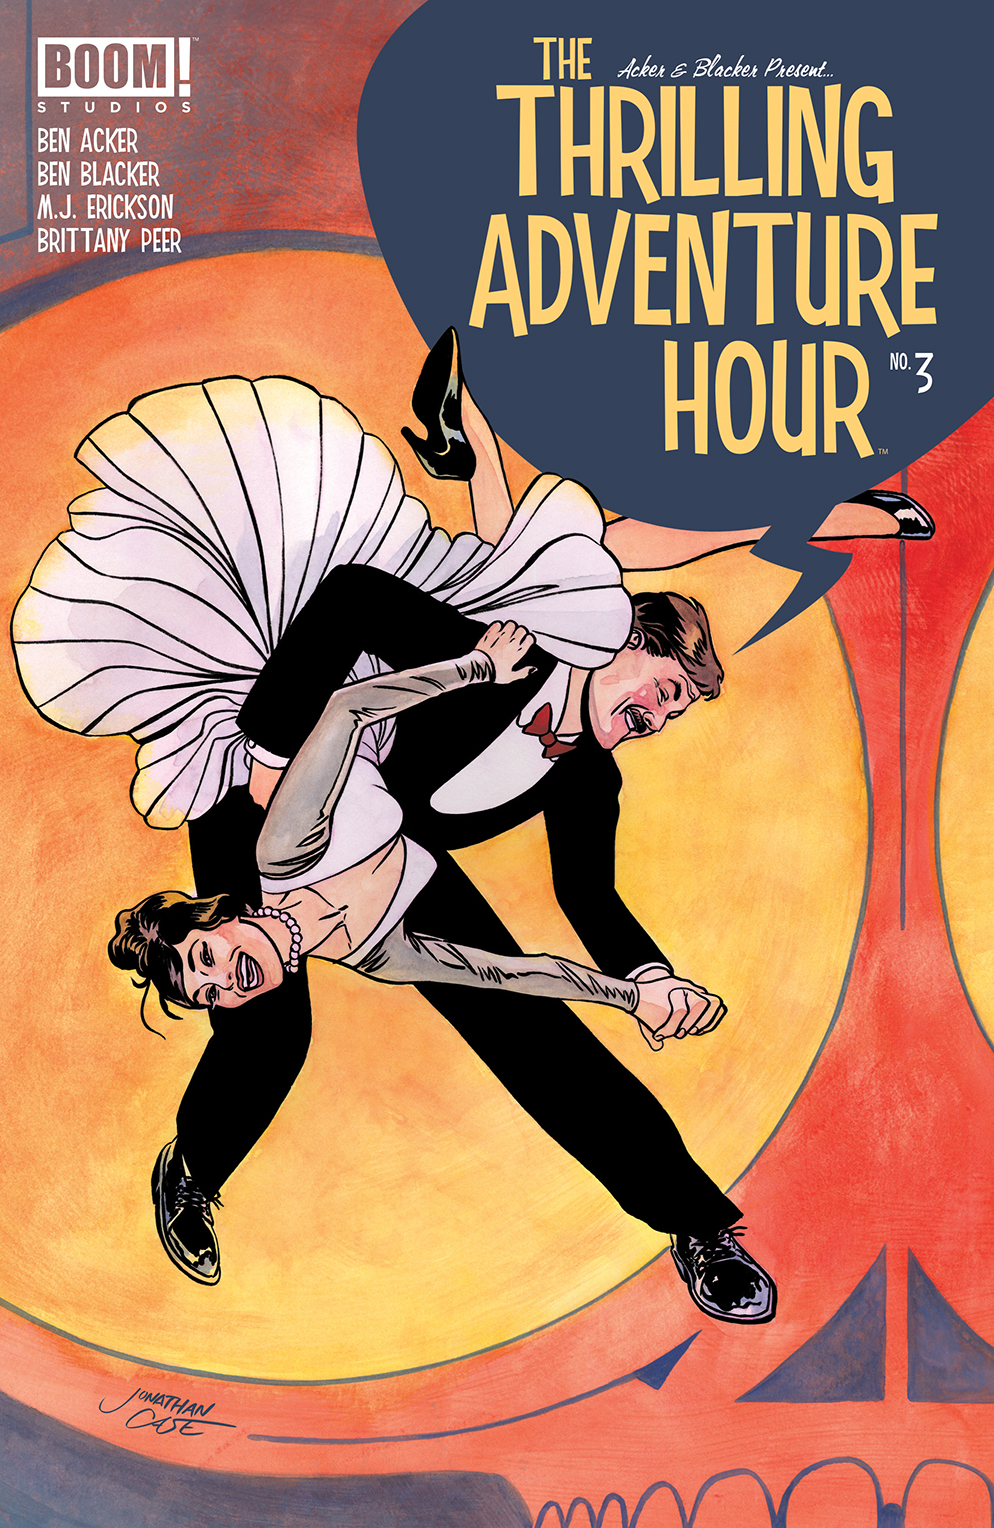 'Thrilling Adventure Hour #3' review: Hinting at big revelations in the lead up to the finale